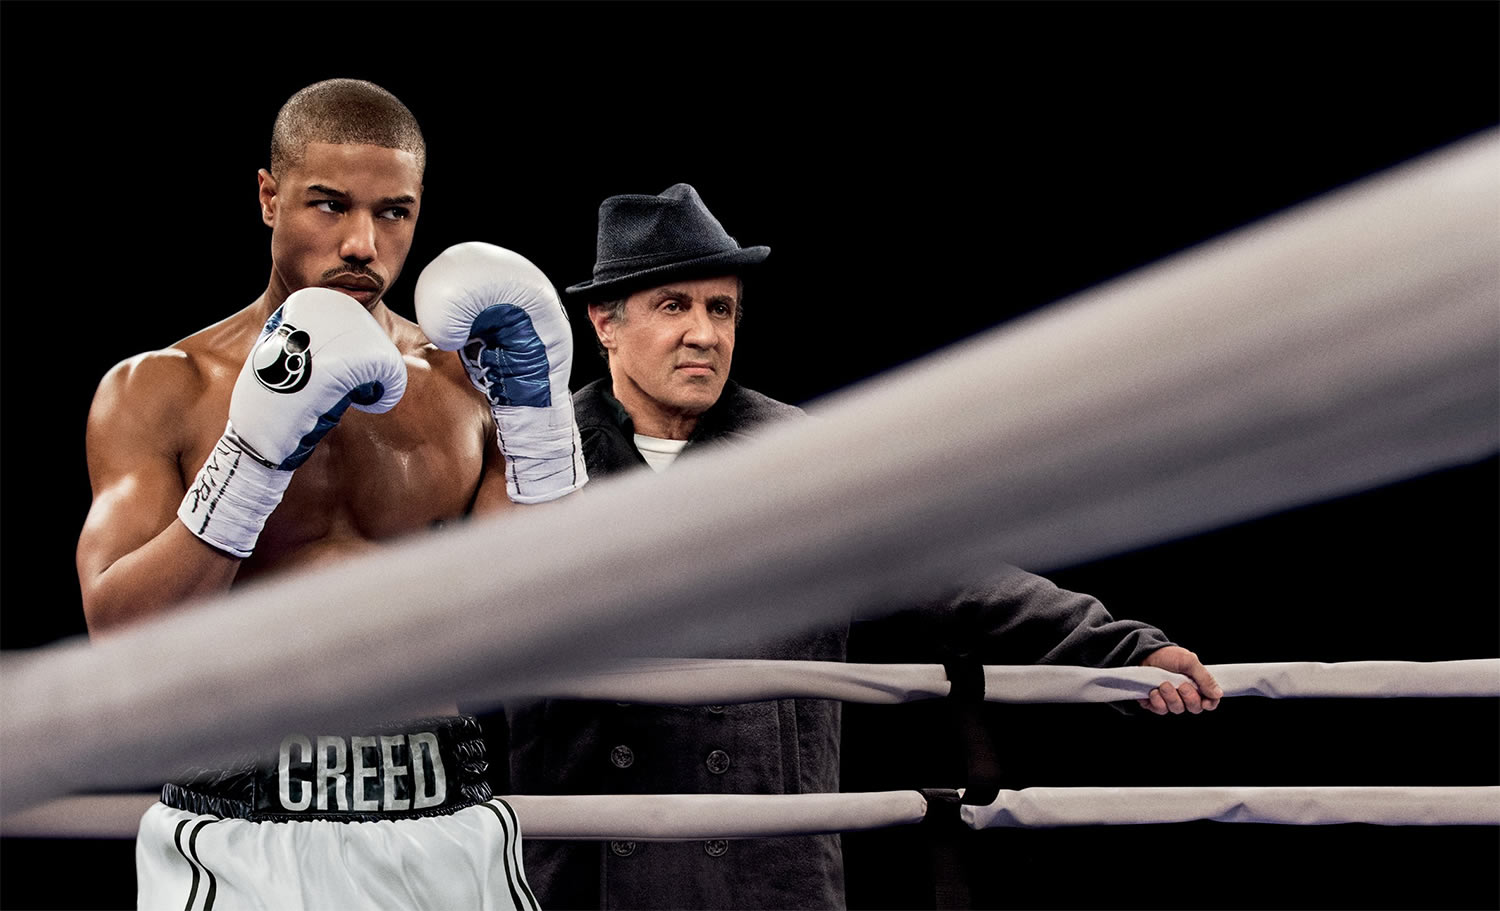 creed and rockie in movie creed